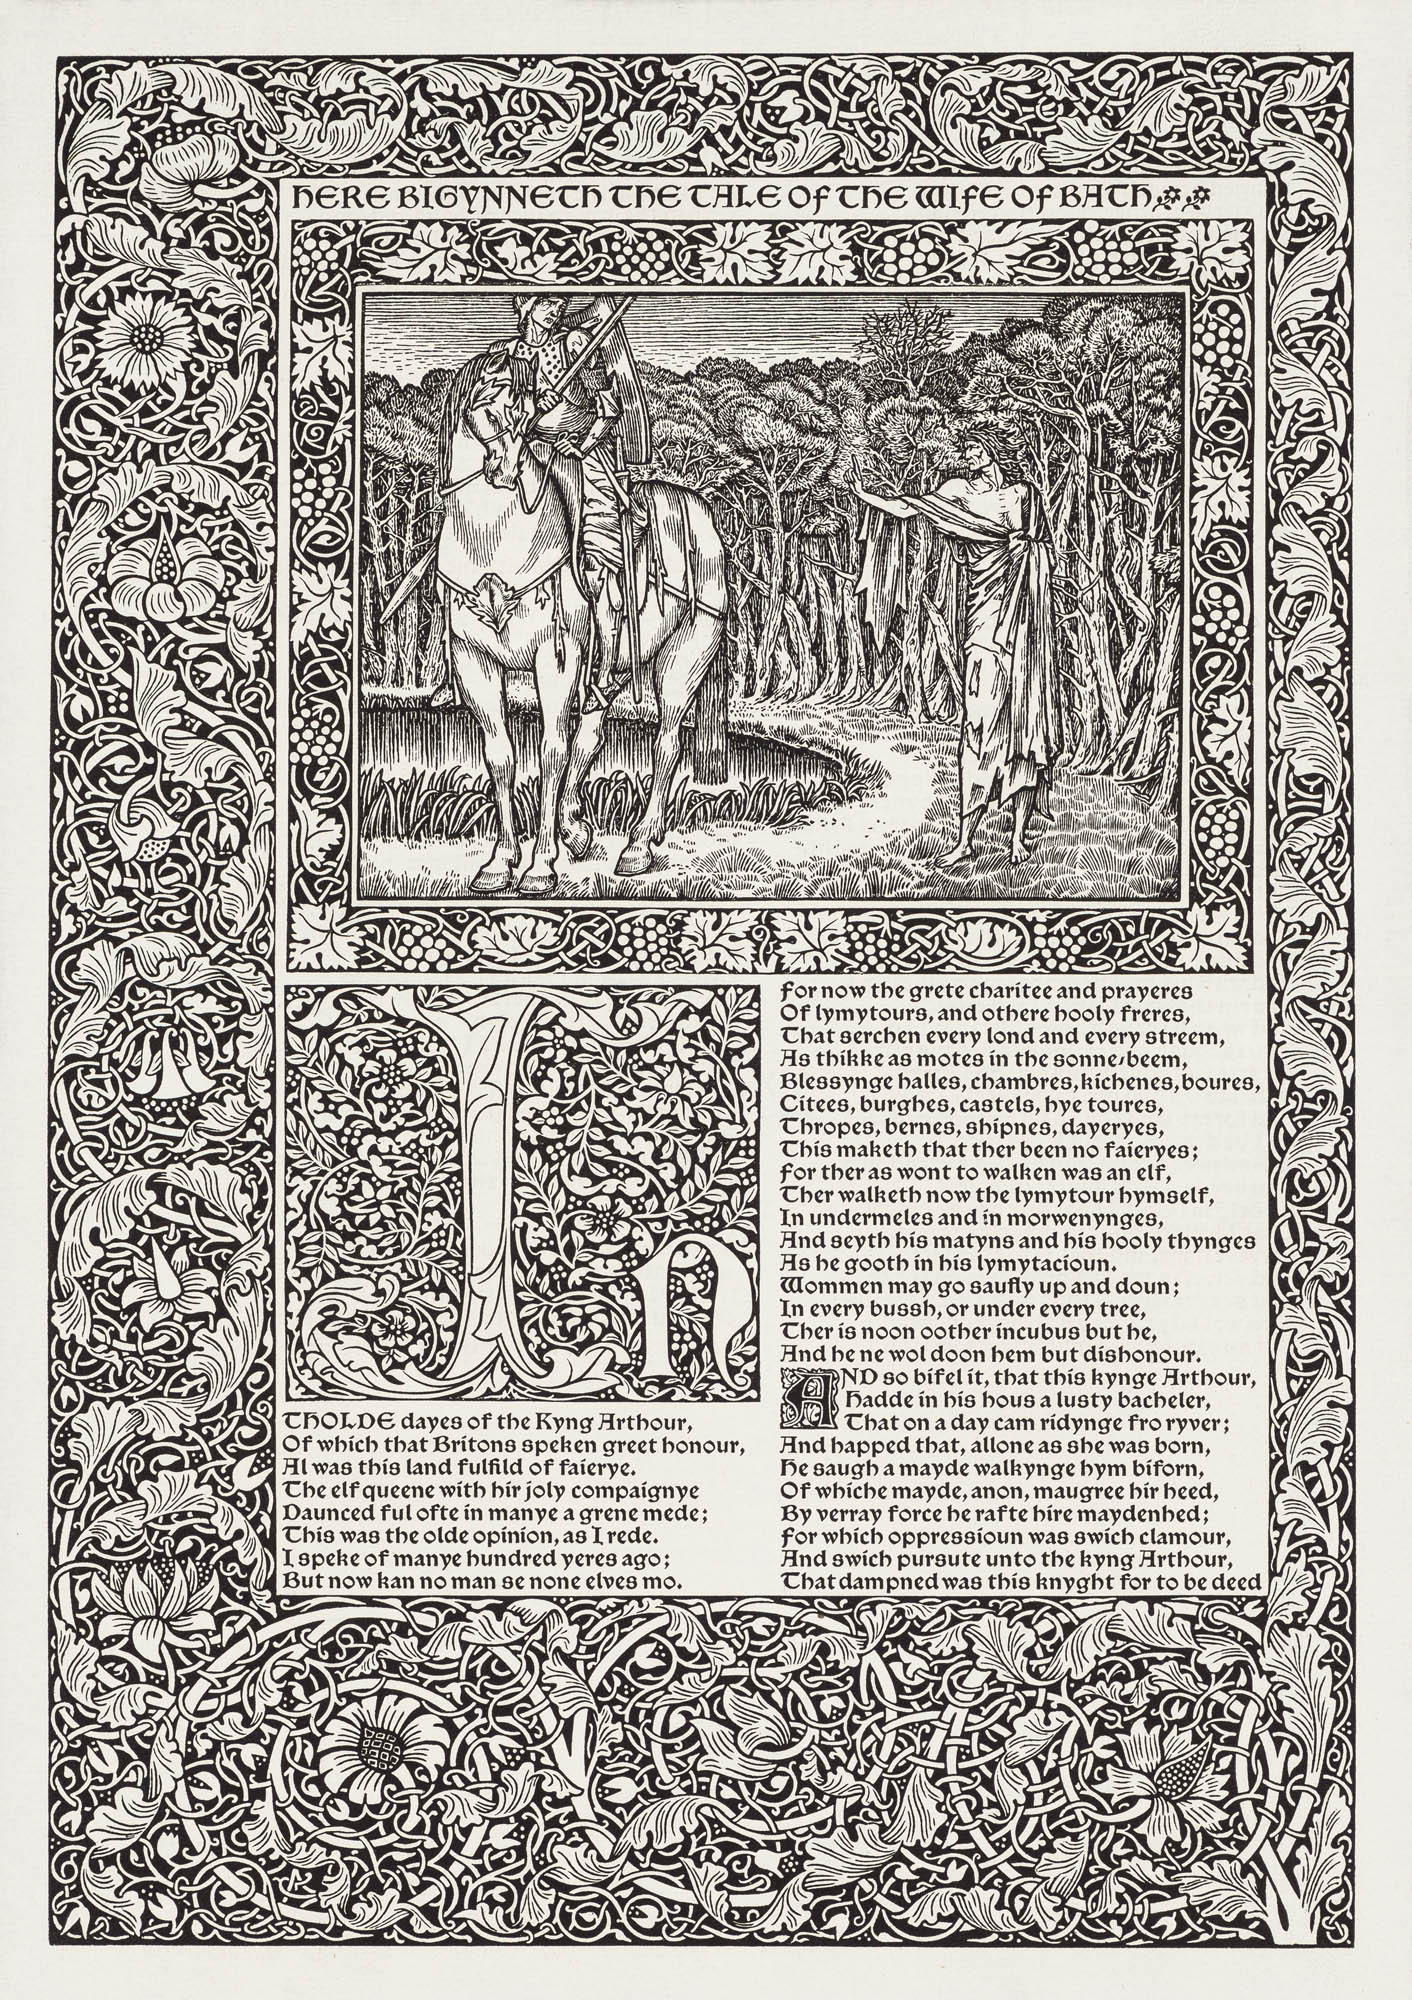 The Works of Geoffrey Chaucer William Morris